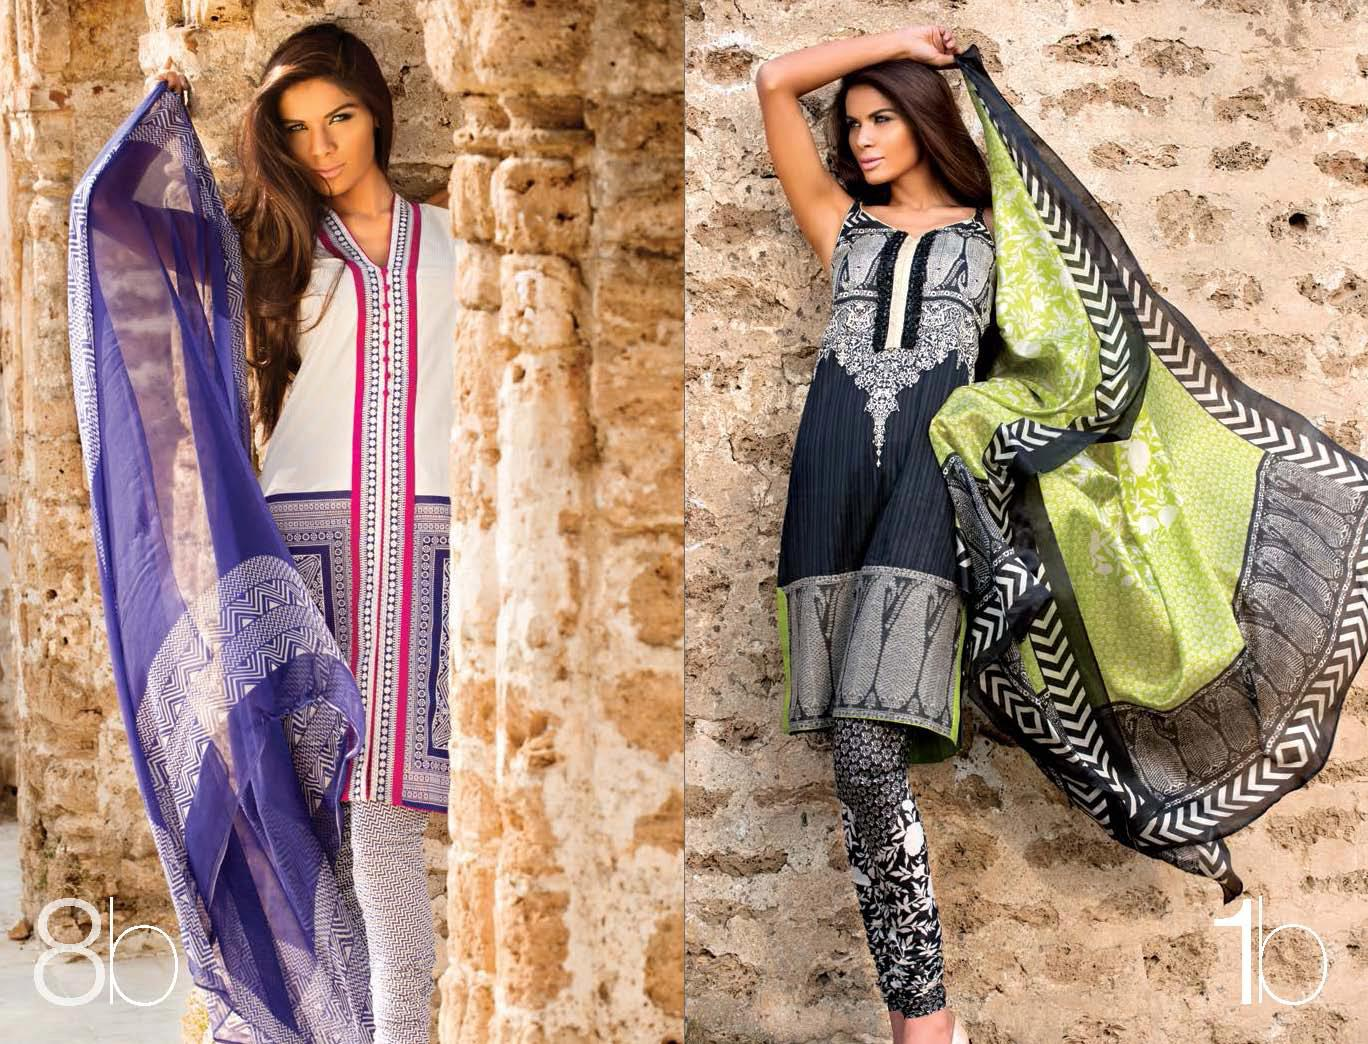 SanaSafinazLawnCollection2013 2014wwwShe9blogspotcom252862529 - Sana Safinaz Lawn Collection 2013